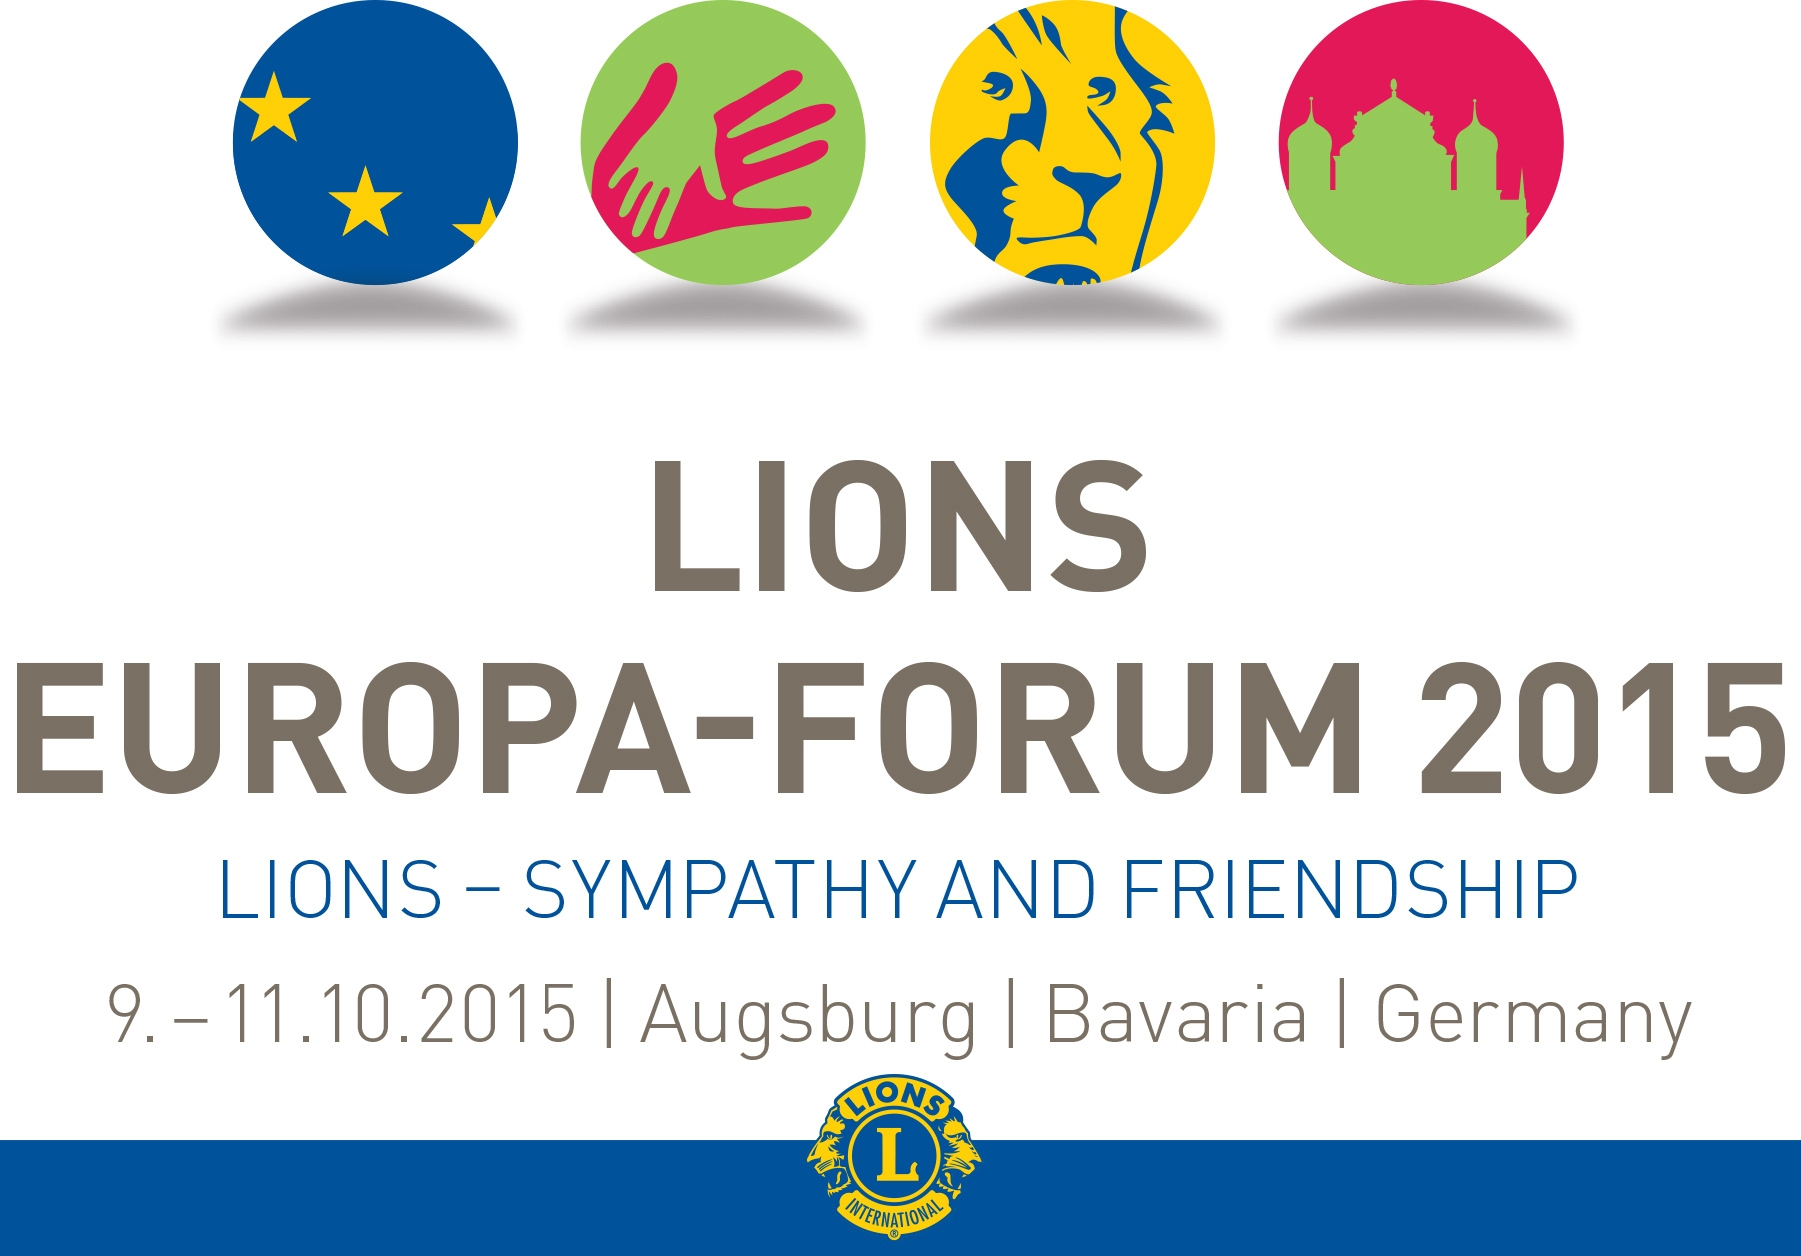 FORUM EUROPEO 2015 DI AUGSBURG